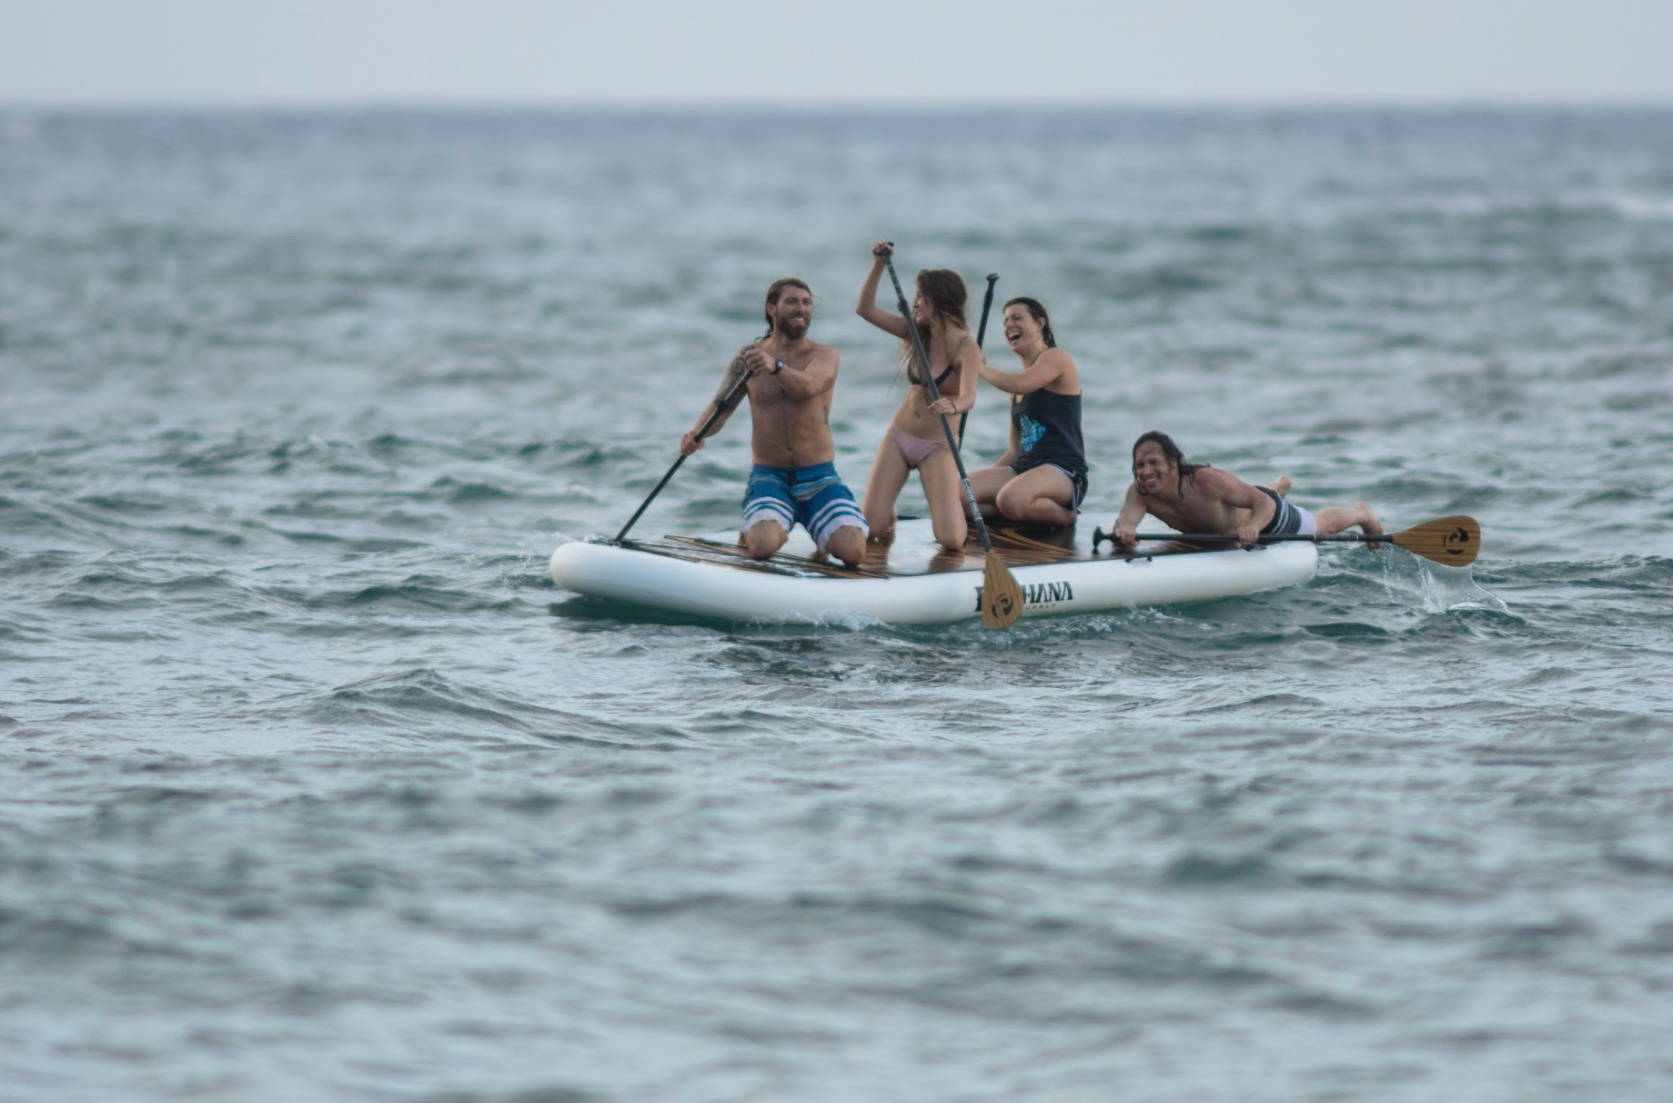 Oahu Nui Giant stand up paddle board supsquatch